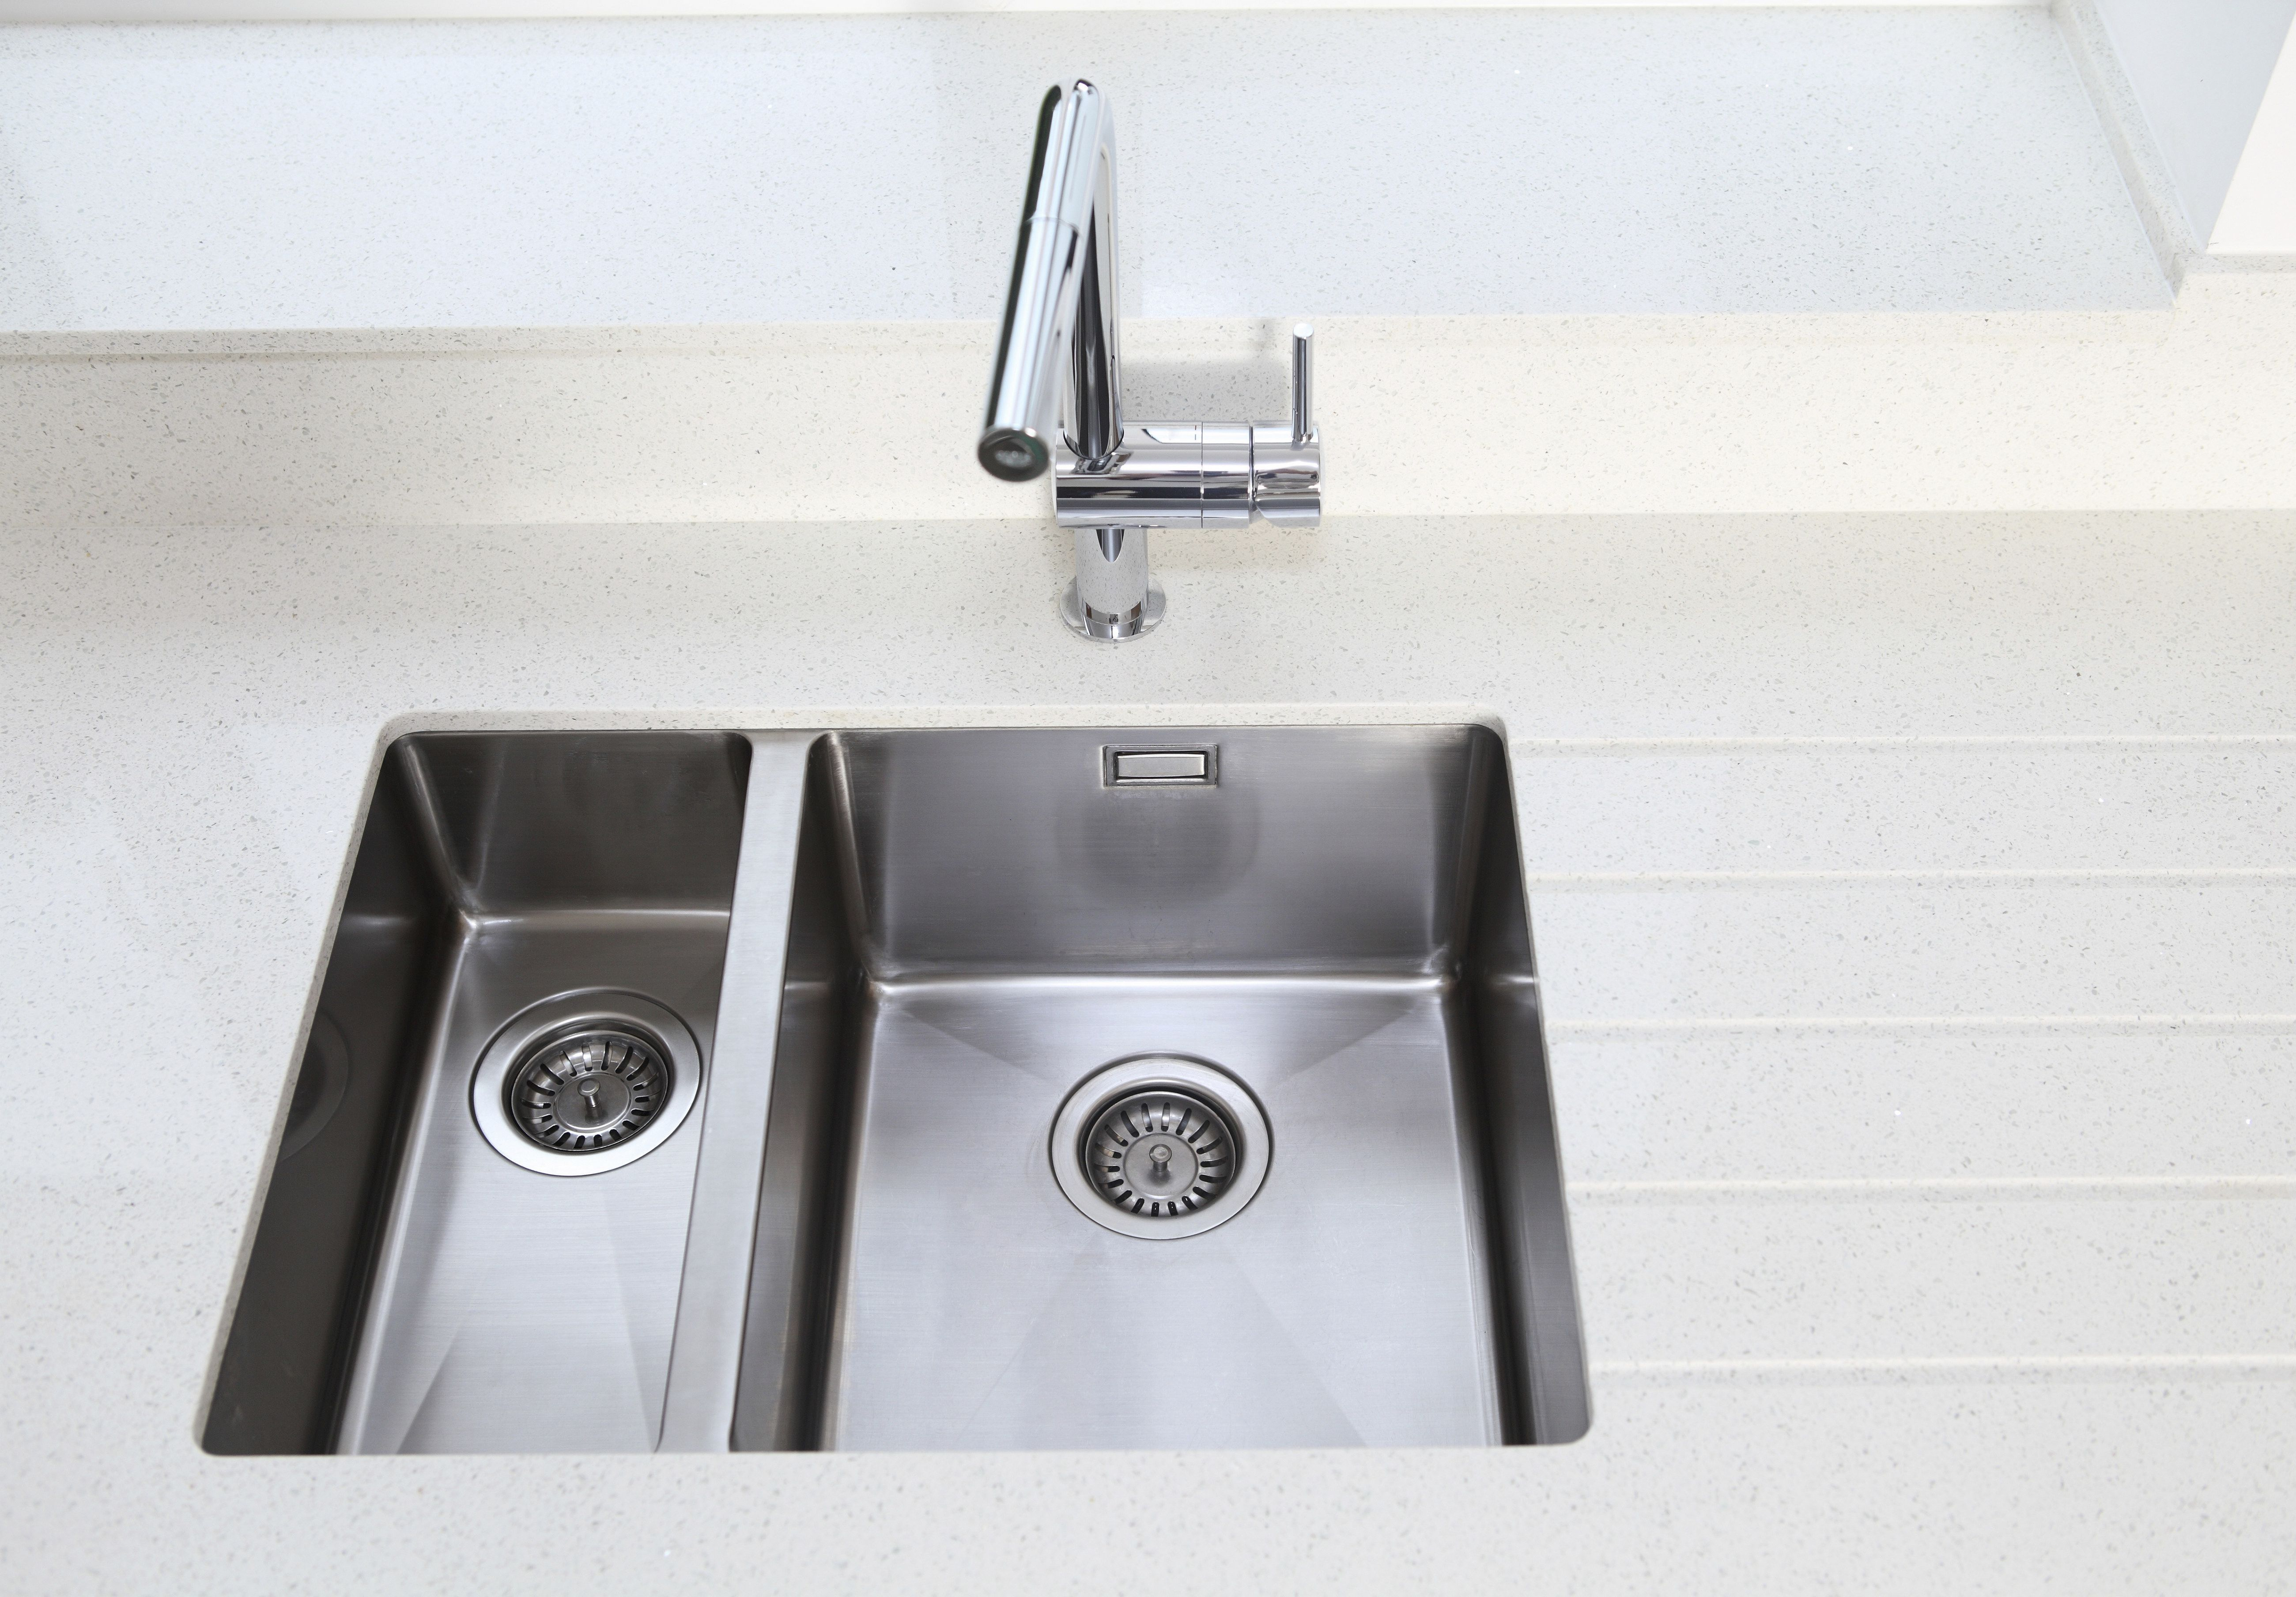 Drop In Vs Undermount Kitchen Sink Pros And Cons Cleaning Painted Walls Cleaning Hacks Clean Baking Pans